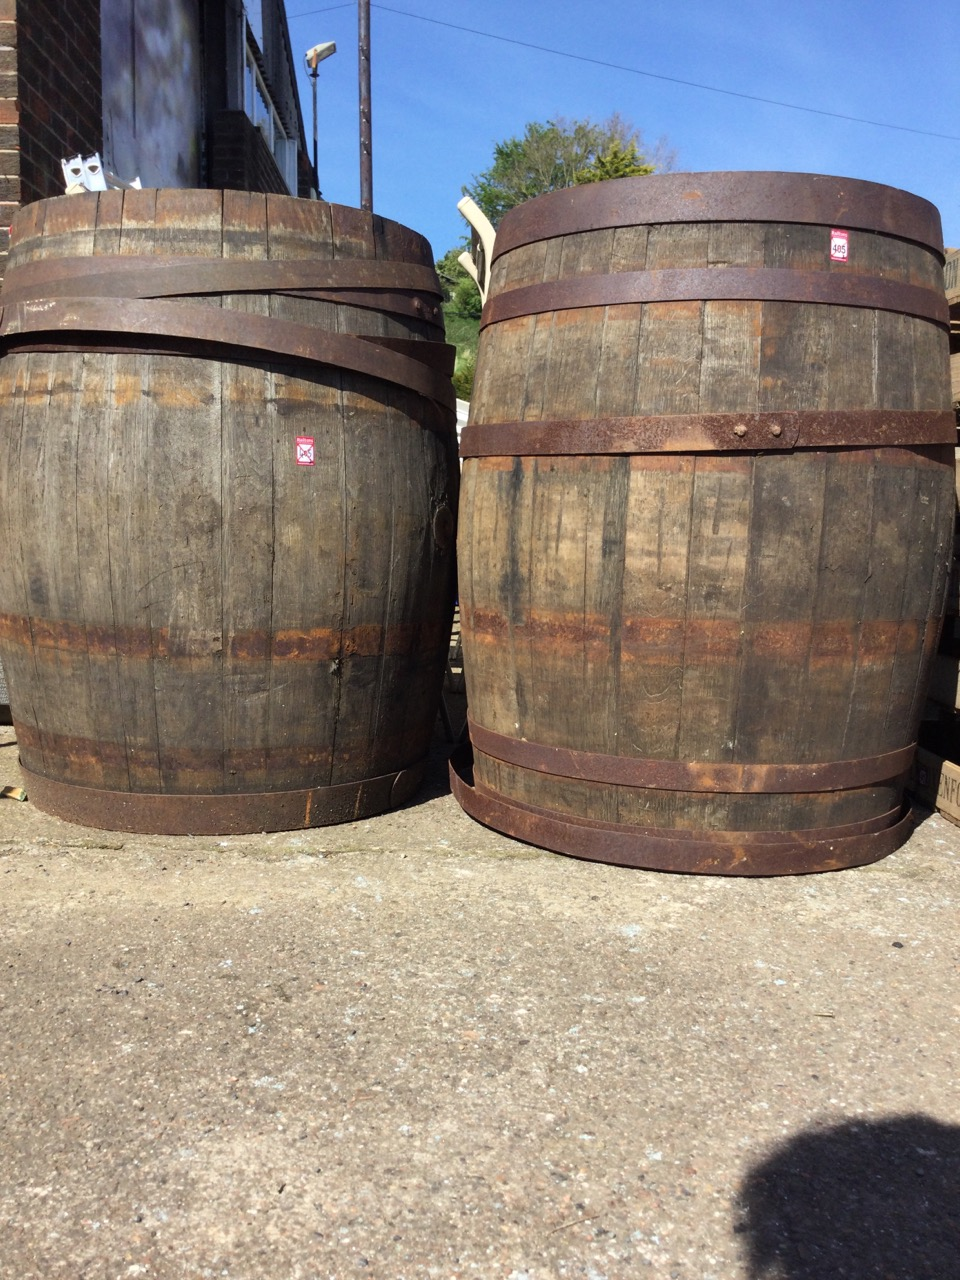 A pair of large oak whiskey barrels, the staves bound by riveted strap bands - some loose. (34.75in) - Image 3 of 3